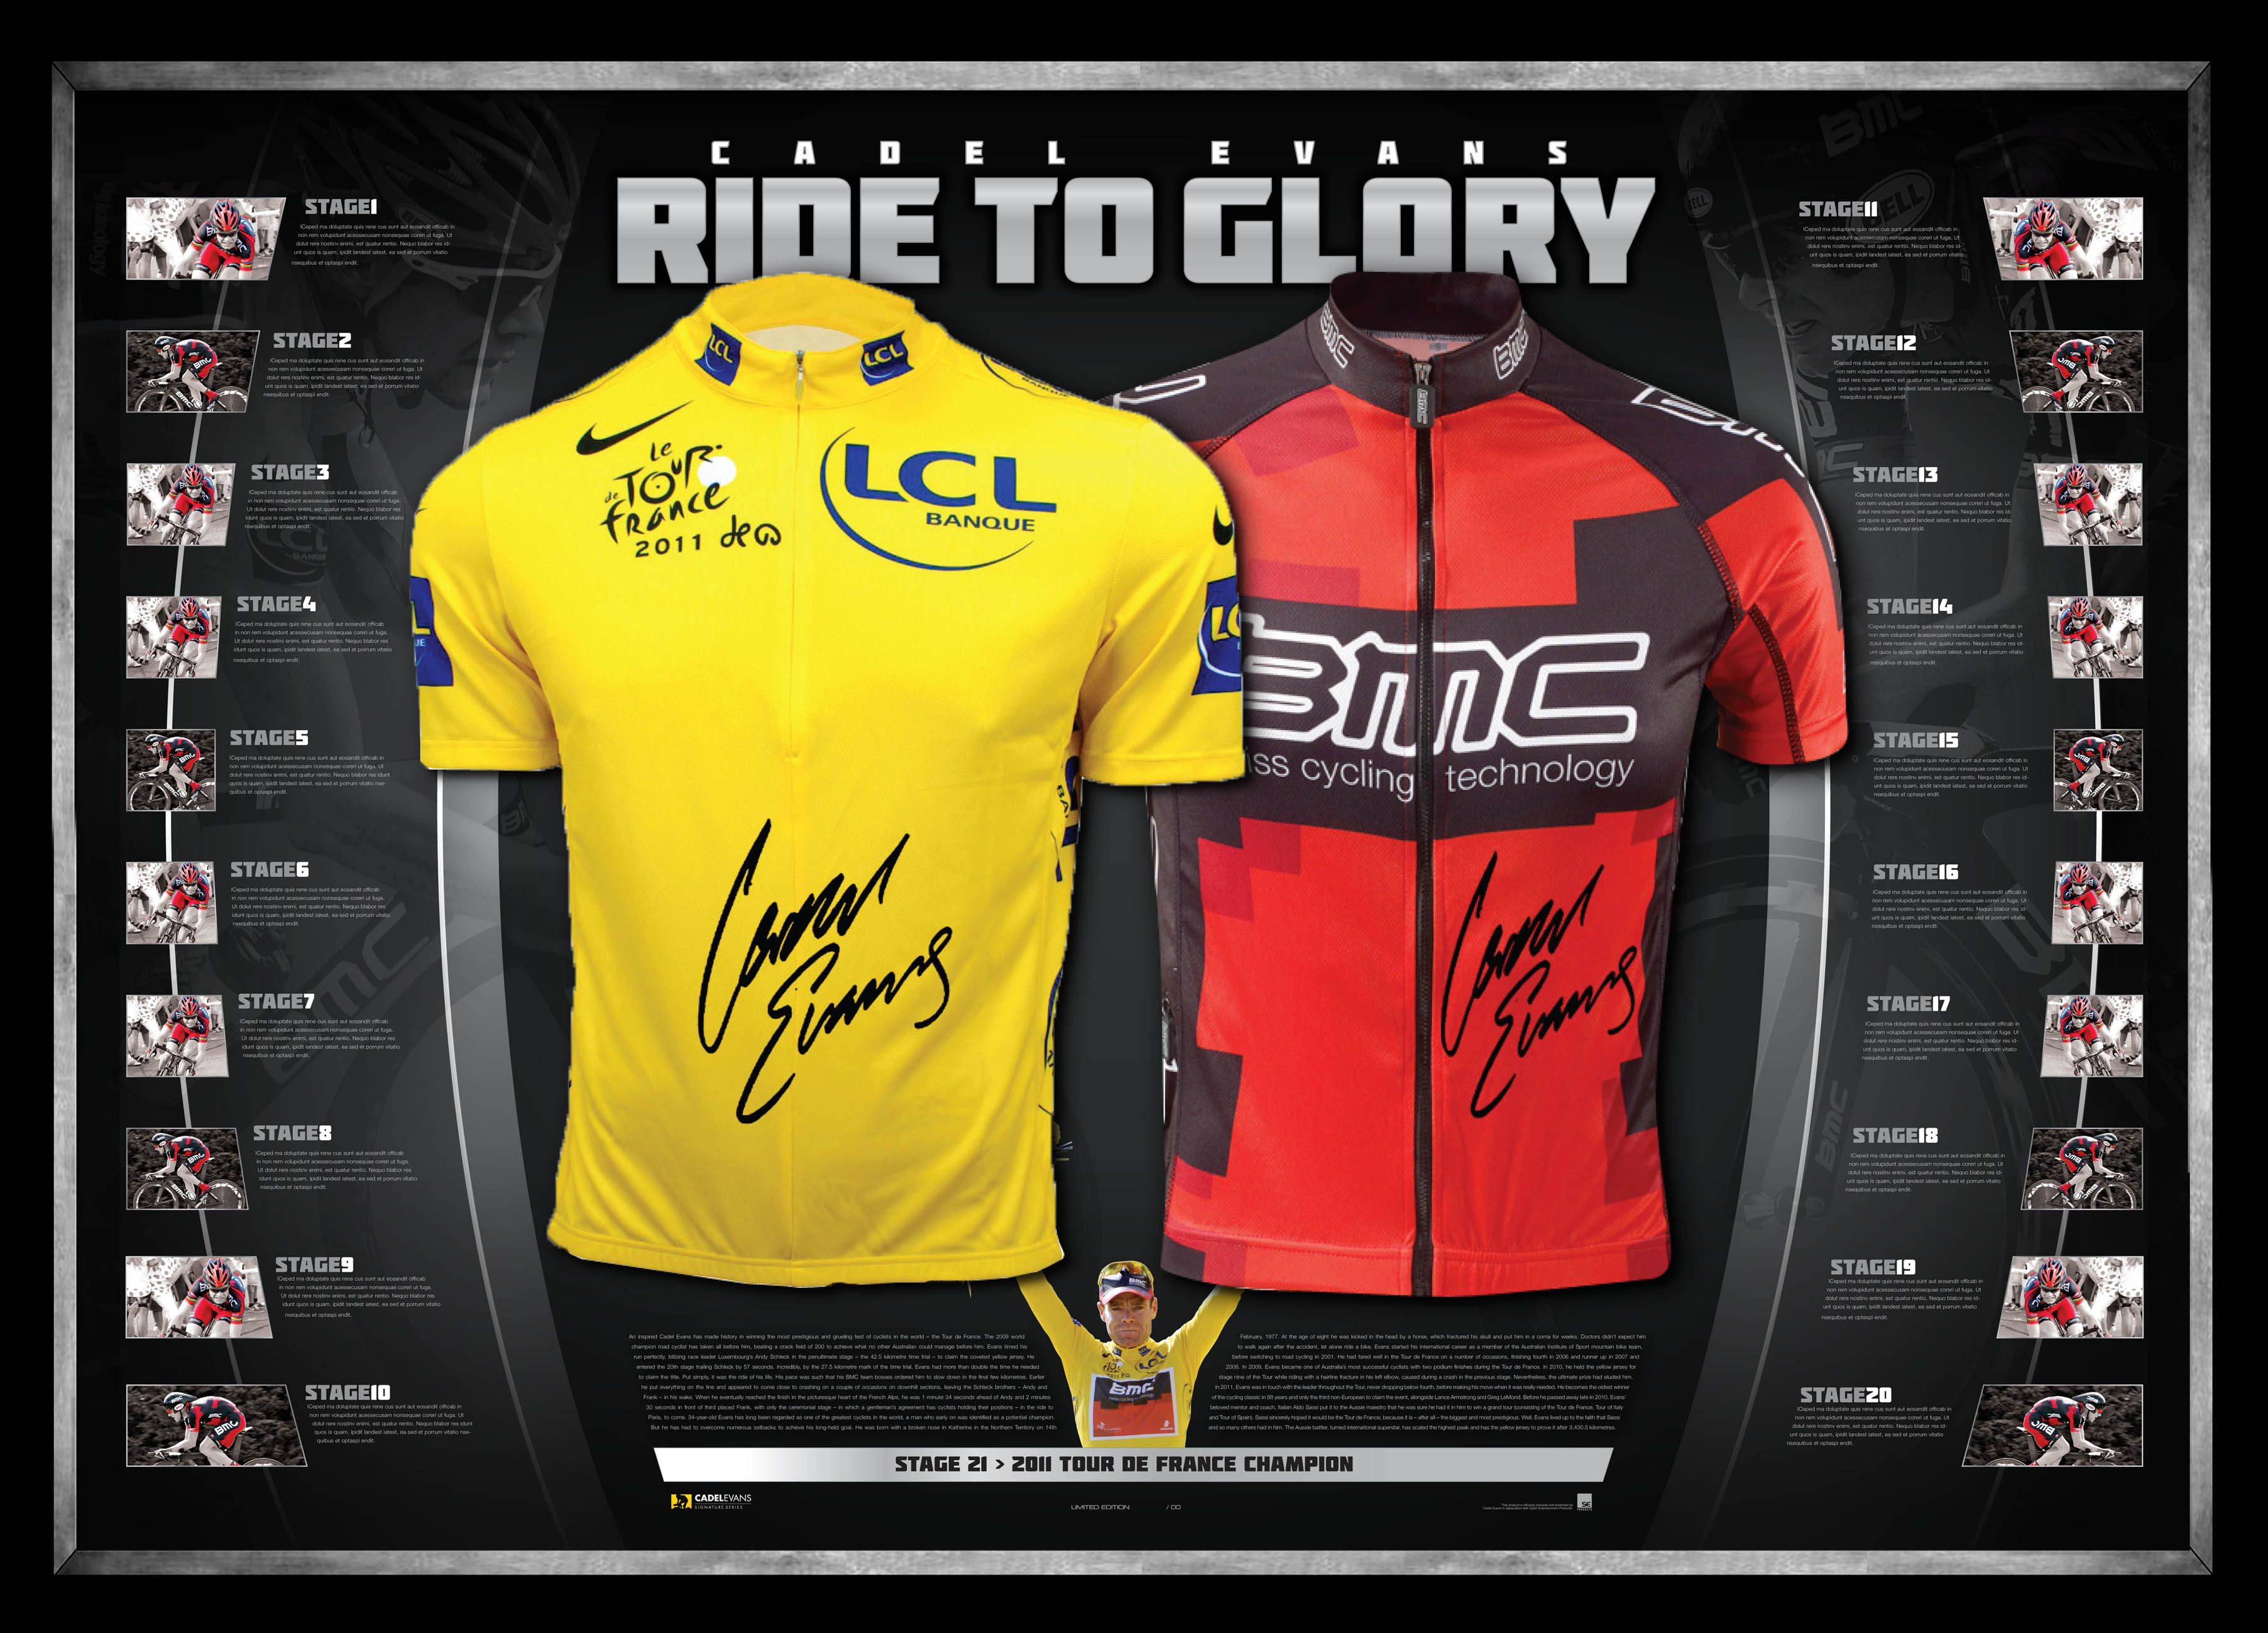 BMC,Dual,Glory',to,'Ride,Edition,Limited,Framed,Signed ...